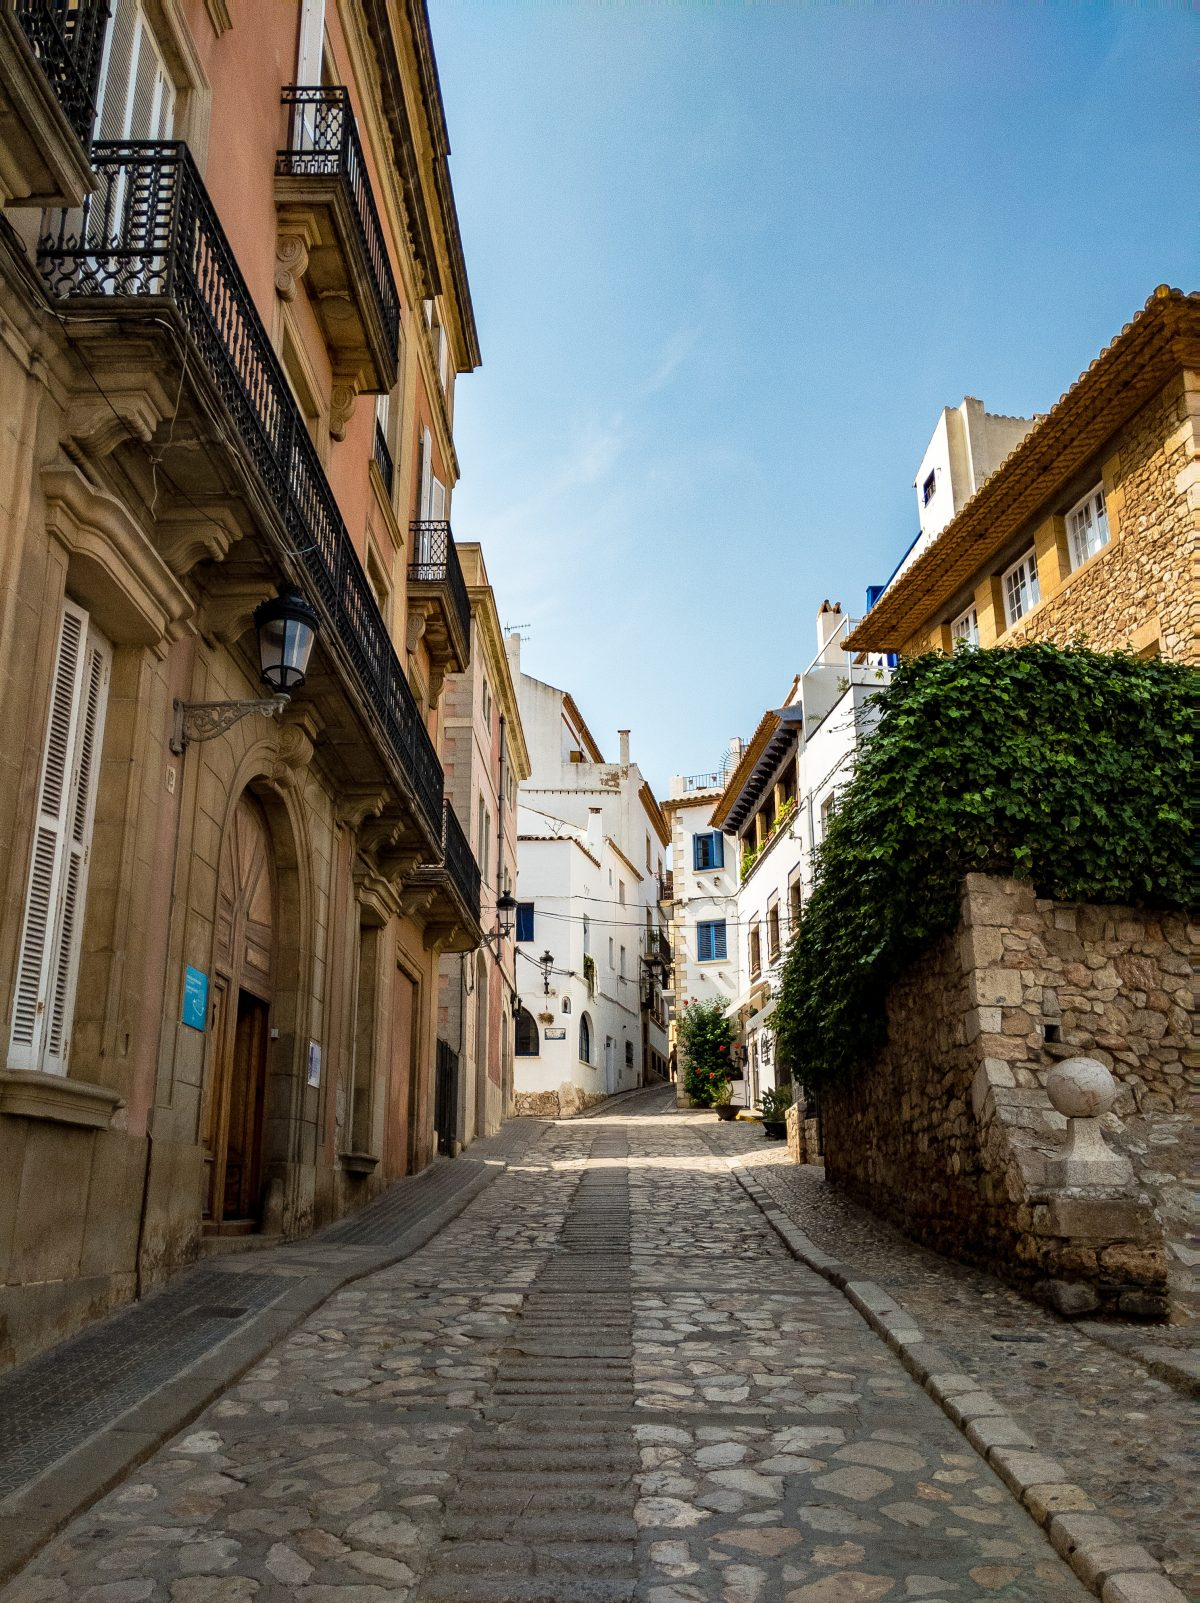 White and brown buildings line either side of a stone street in Sitges, Spain